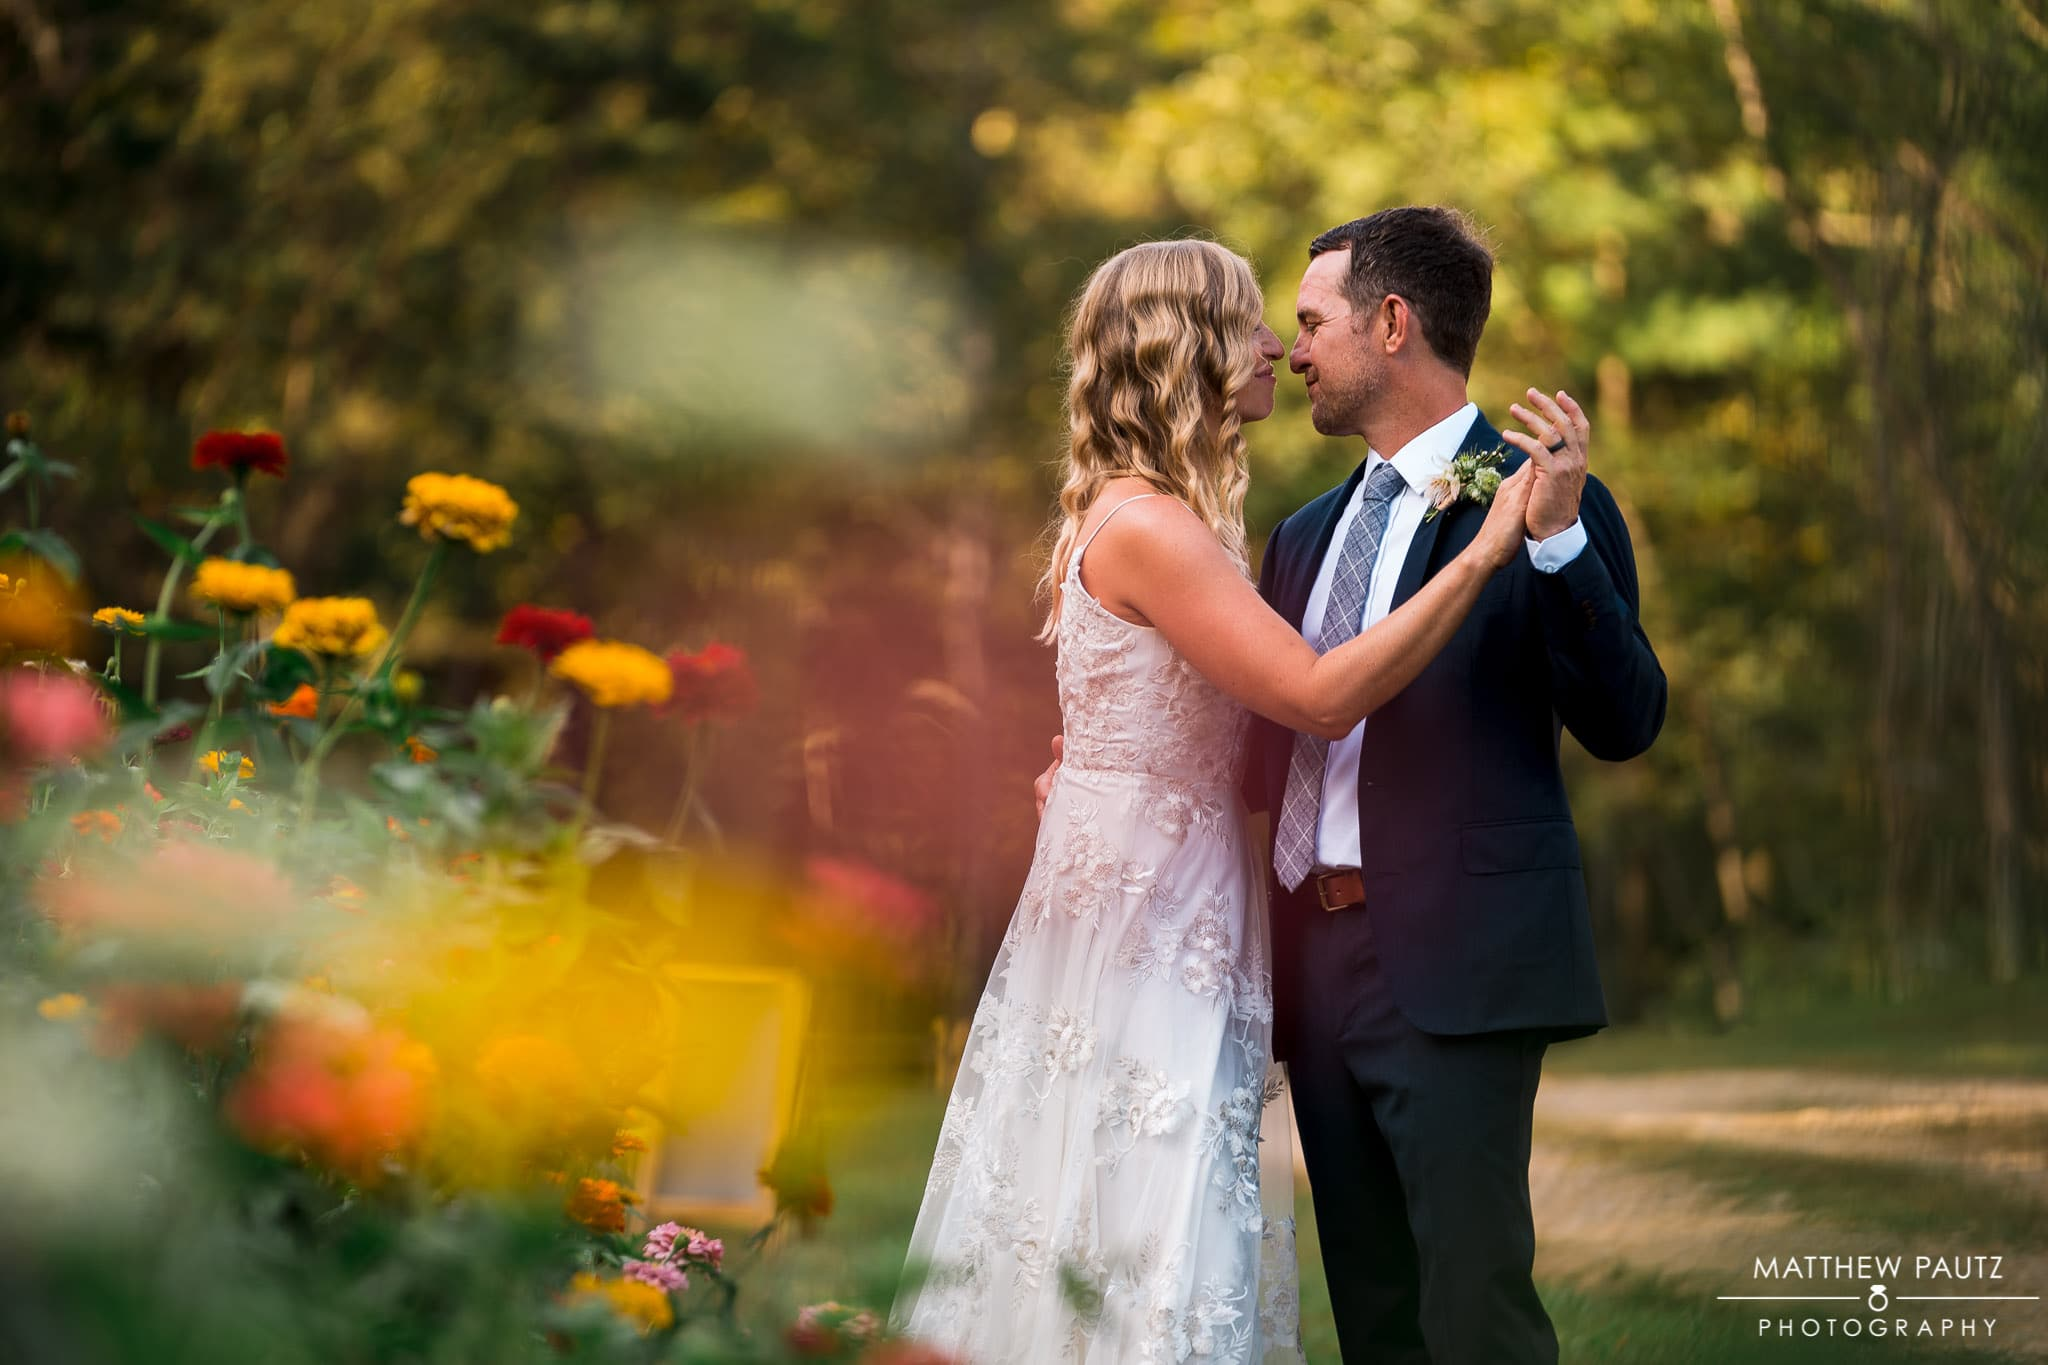 bride and groom dancing in flowers after outdoor wedding in Asheville NC